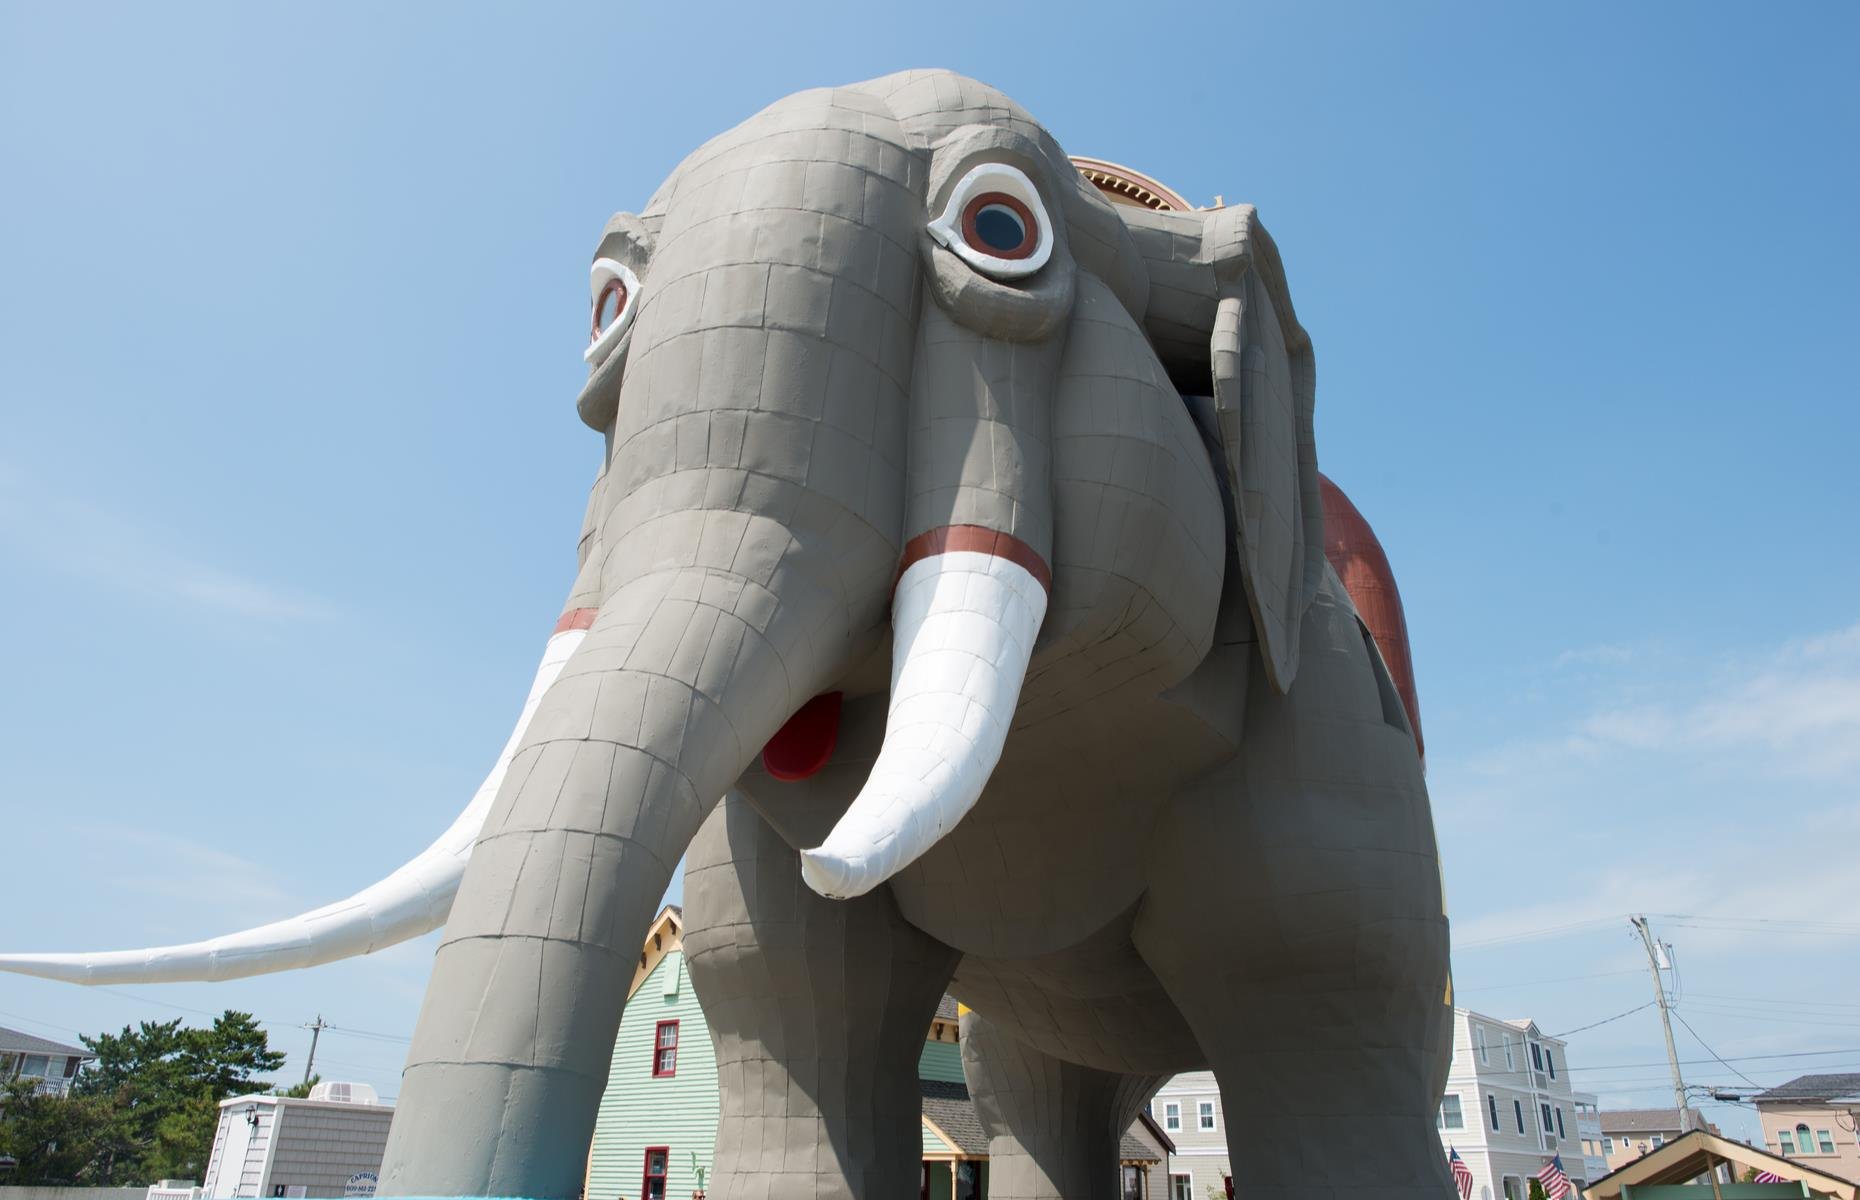 Slide 61 of 101: Feel-good Atlantic City isfamed for its buzzy boardwalk, casinos and steel pier and then, out of the city proper,quirky roadside attractions begin to pop up. A highlight isLucy the Elephant, a mammoth model elephant in Margate City (pictured).The city of Cape May sits right at the southern tip of the Cape May peninsula, near attractions such asthe Cape May National Wildlife Refuge with its beaches, dunes and marshes (the FWS reminds visitors to check for park updates before heading out).